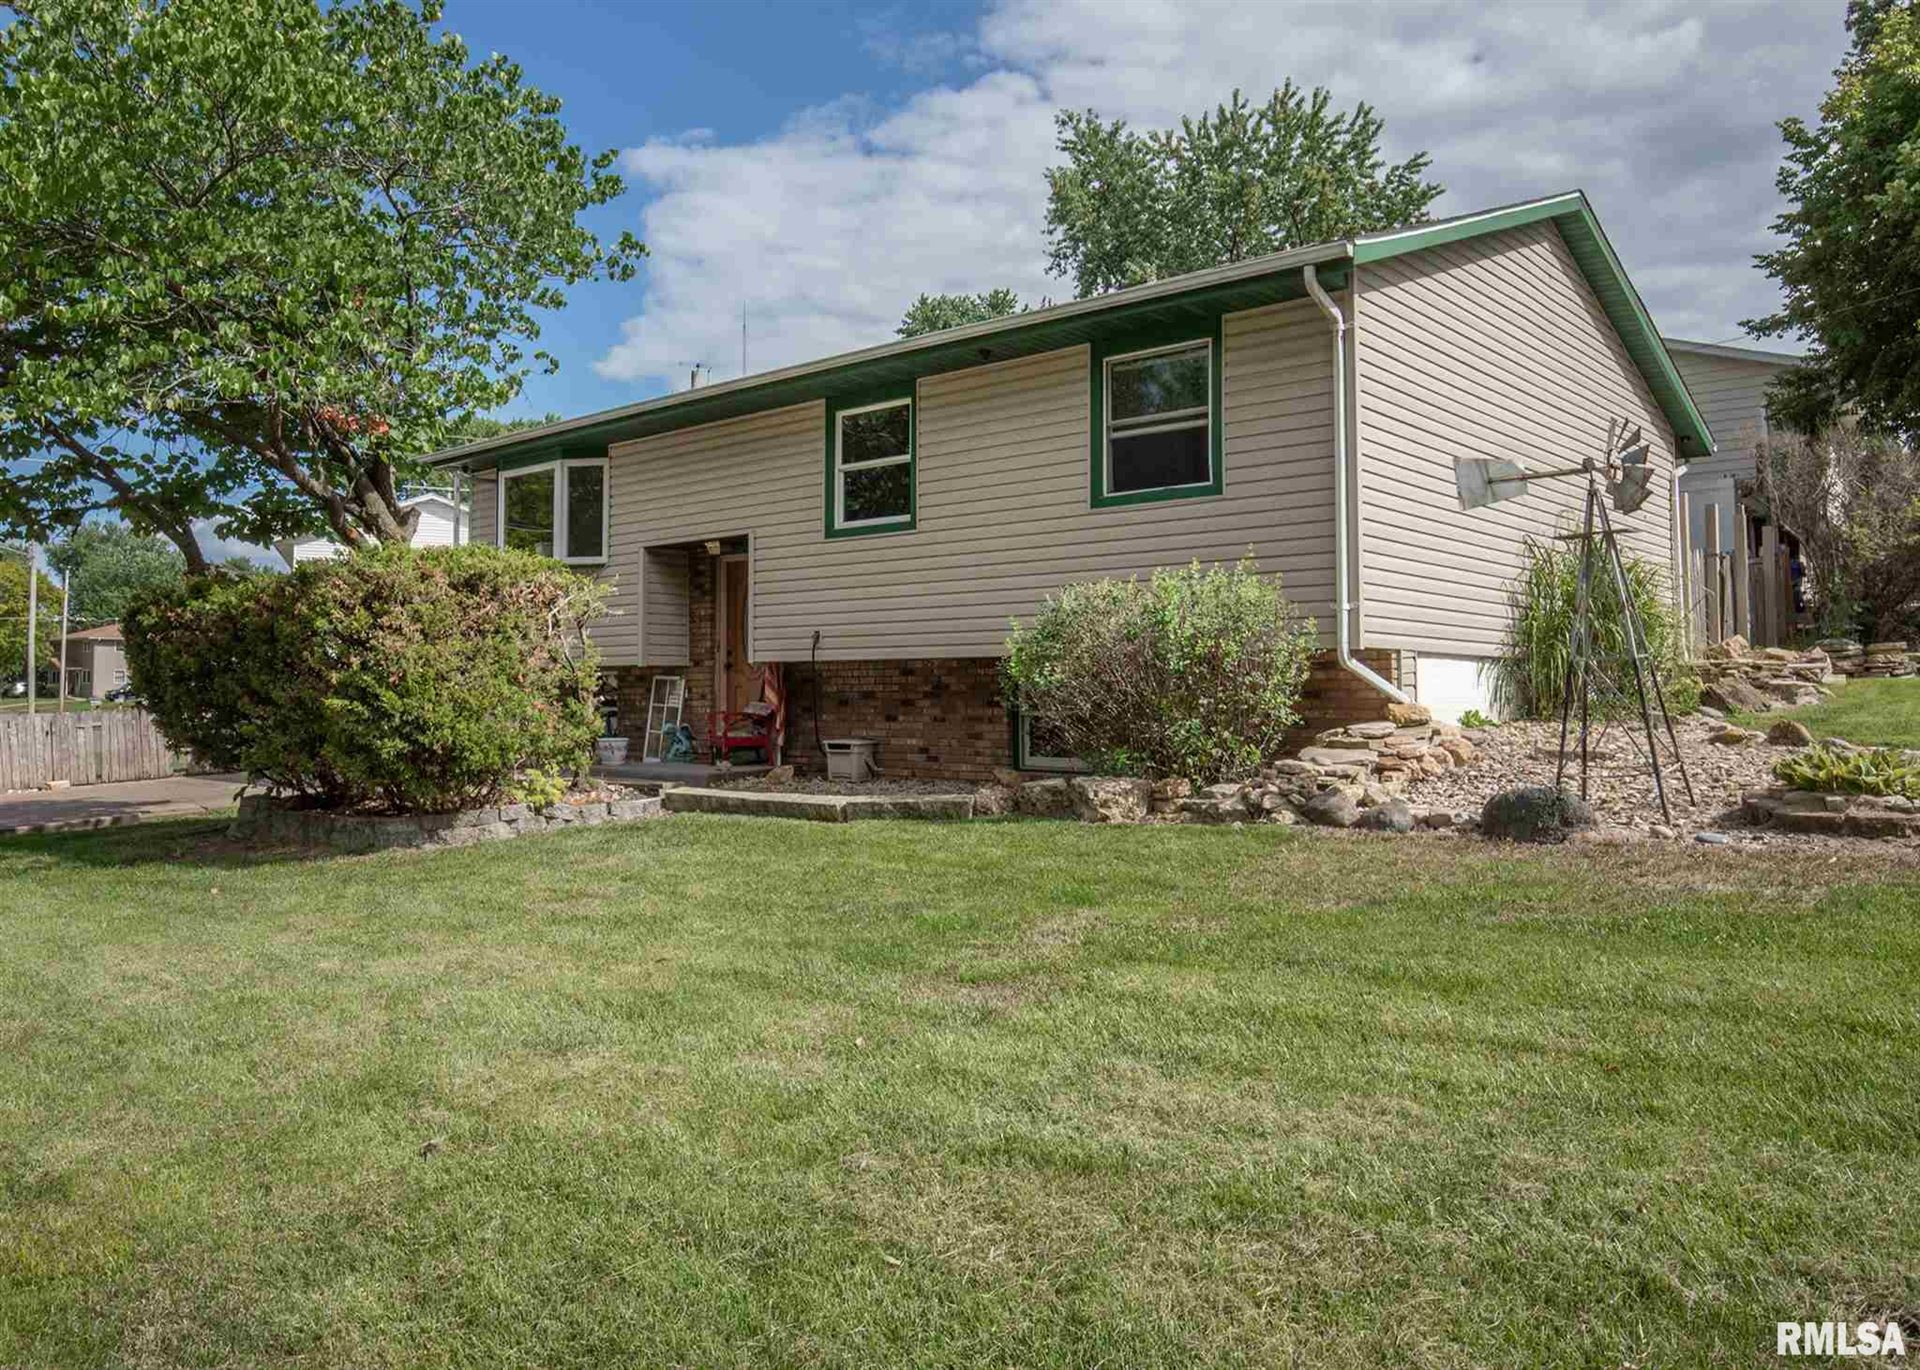 3021 SUNBURST Drive, Bettendorf, IA 52722 - MLS#: QC4214335